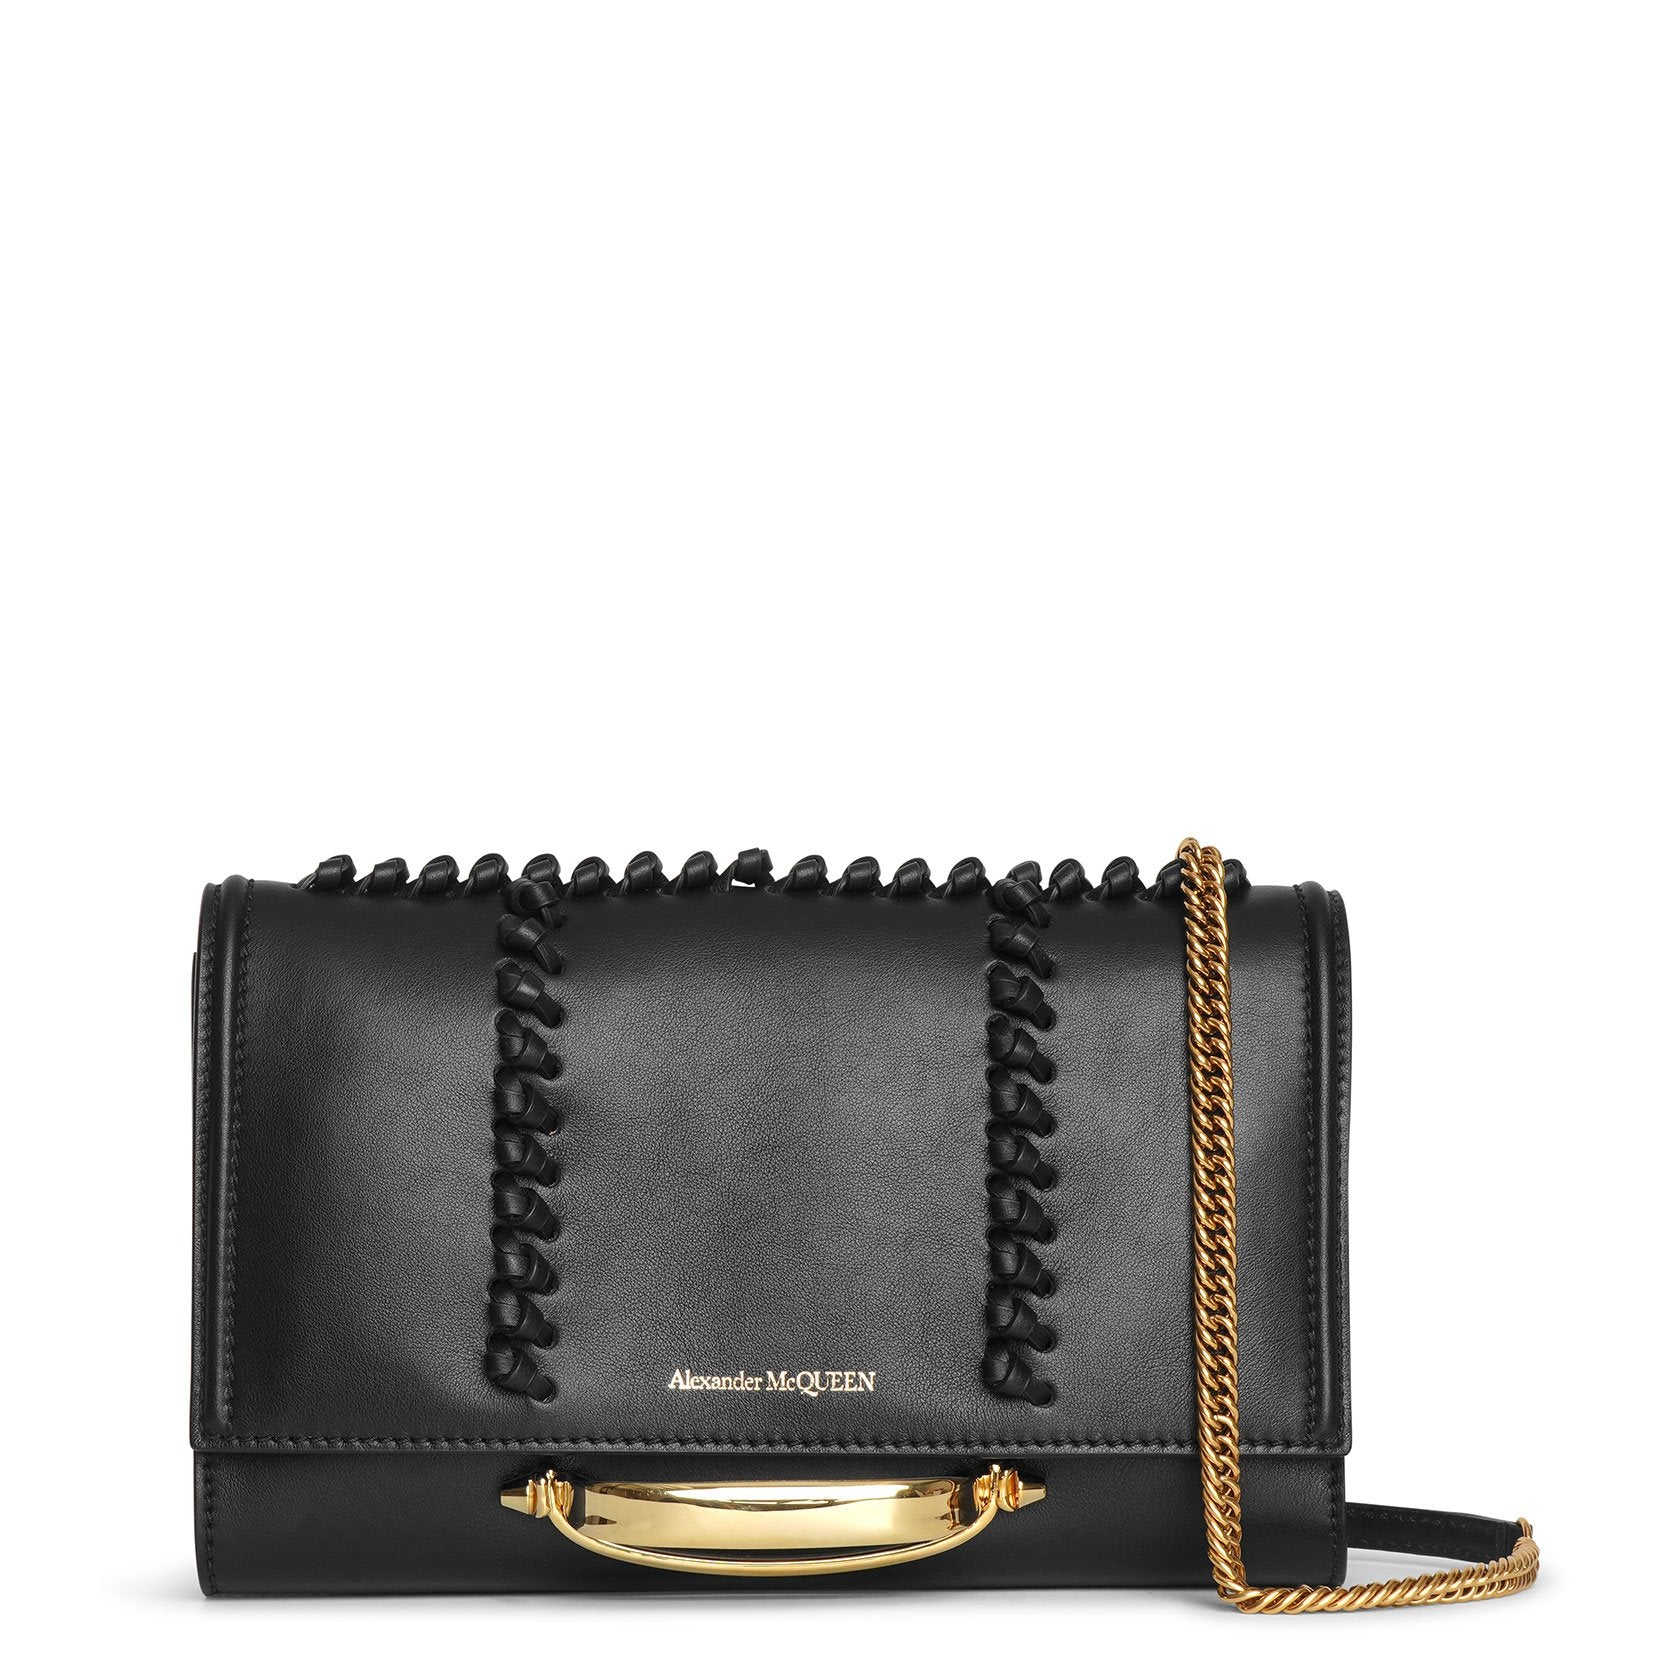 Alexander Mcqueen The Story small whipstitch crossbody bag